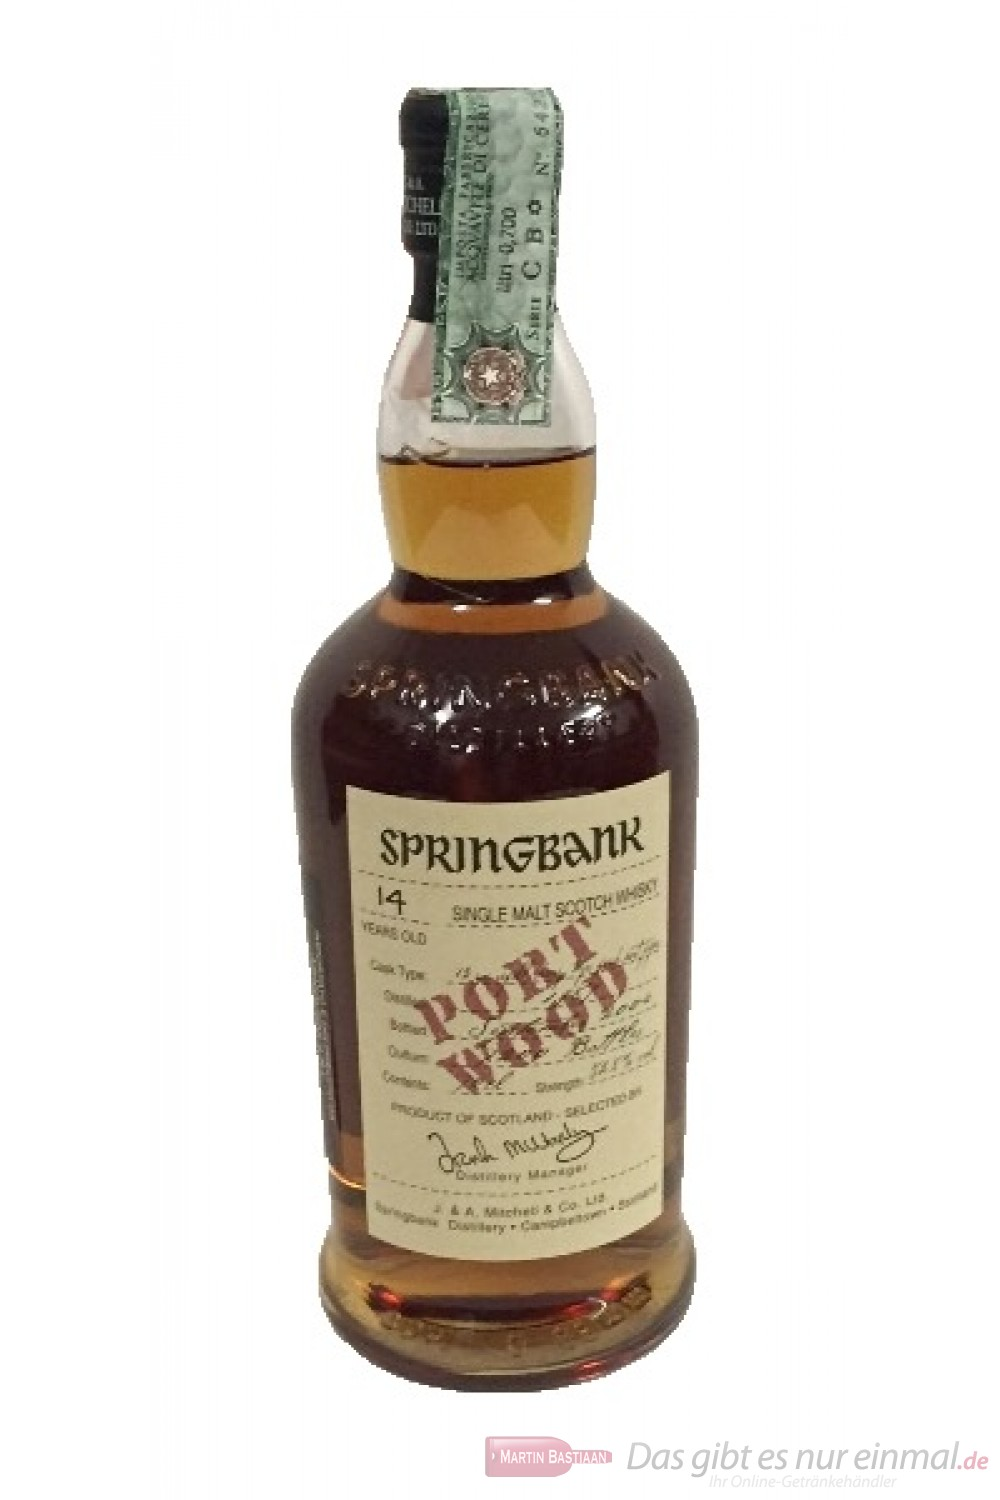 Springbank 14 Years Port Wood